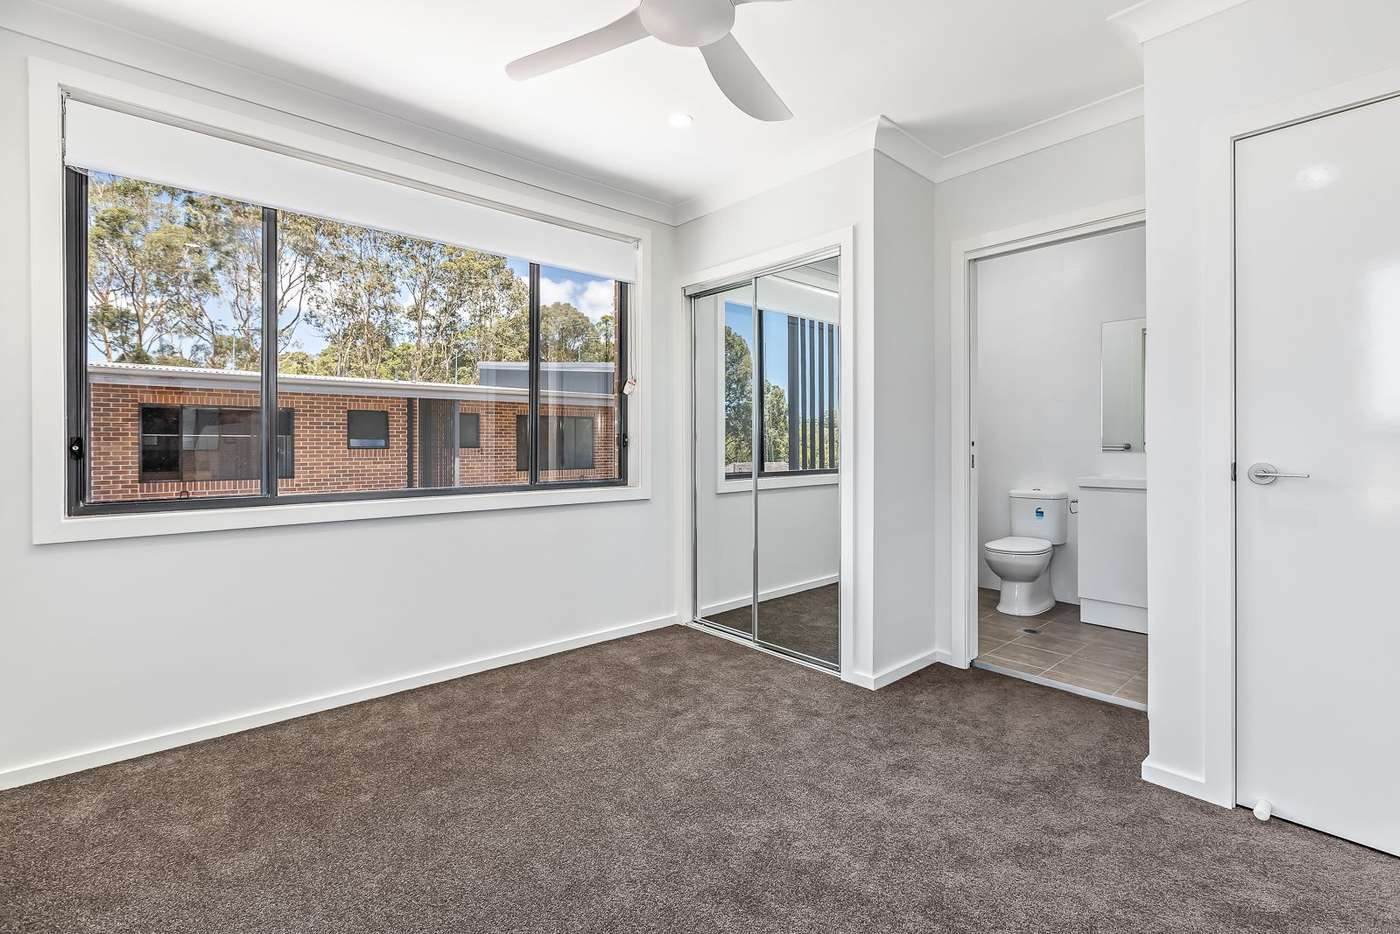 Sixth view of Homely townhouse listing, 79 University Drive, North Lambton NSW 2299